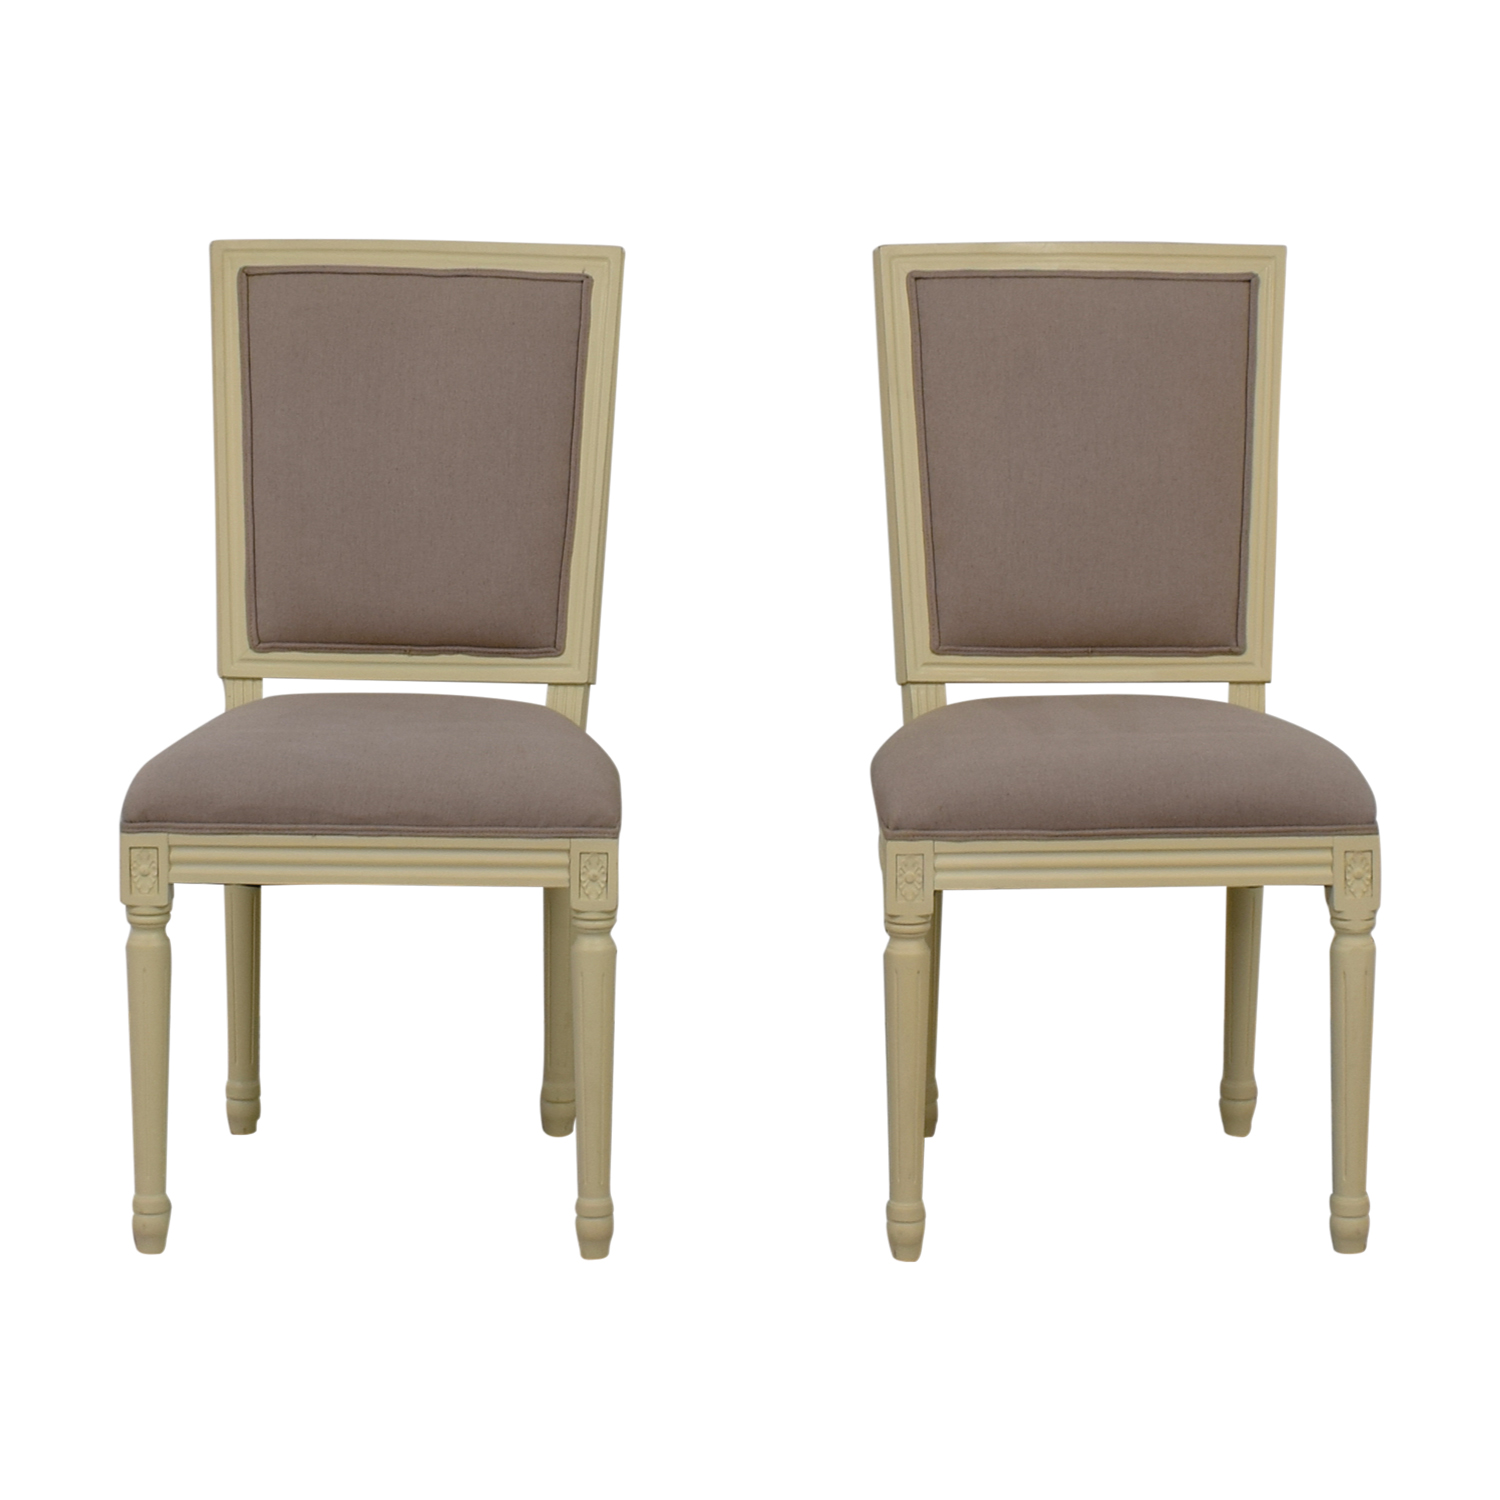 Shop Safavieh Buchanan Side Dining Chairs Safavieh Chairs ...